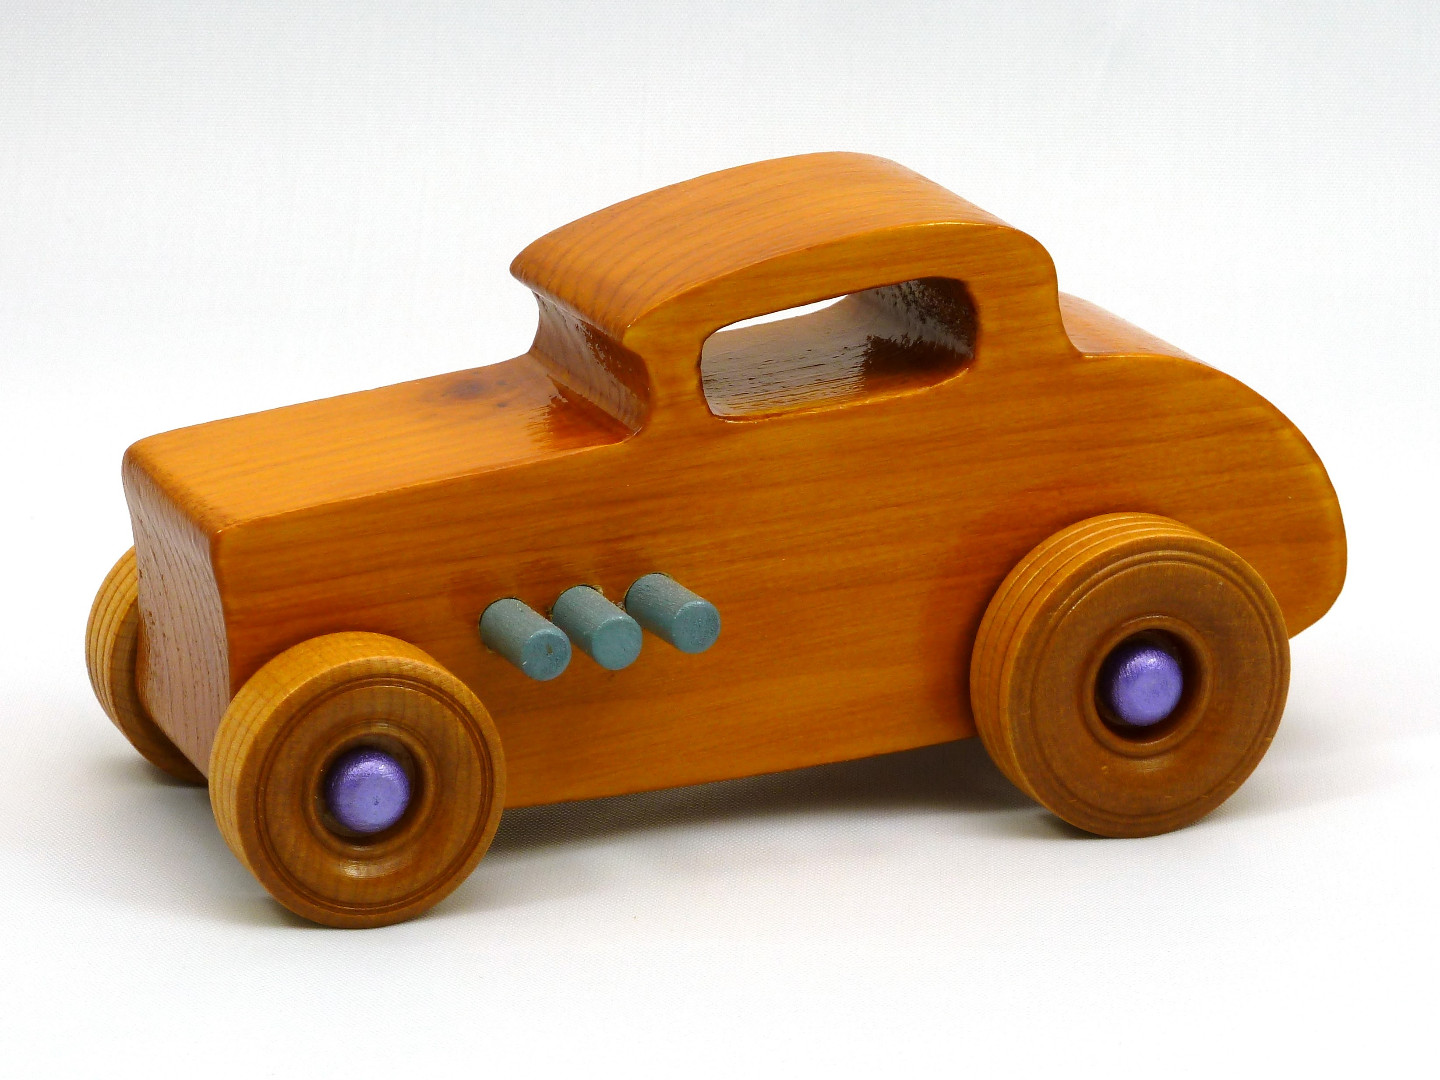 20170902-192035 Wooden Toy Car - Hot Rod Freaky Ford - 32 Deuce Coupe - Pine - Amber Shellac - Purple Metalic - Gray.jpg